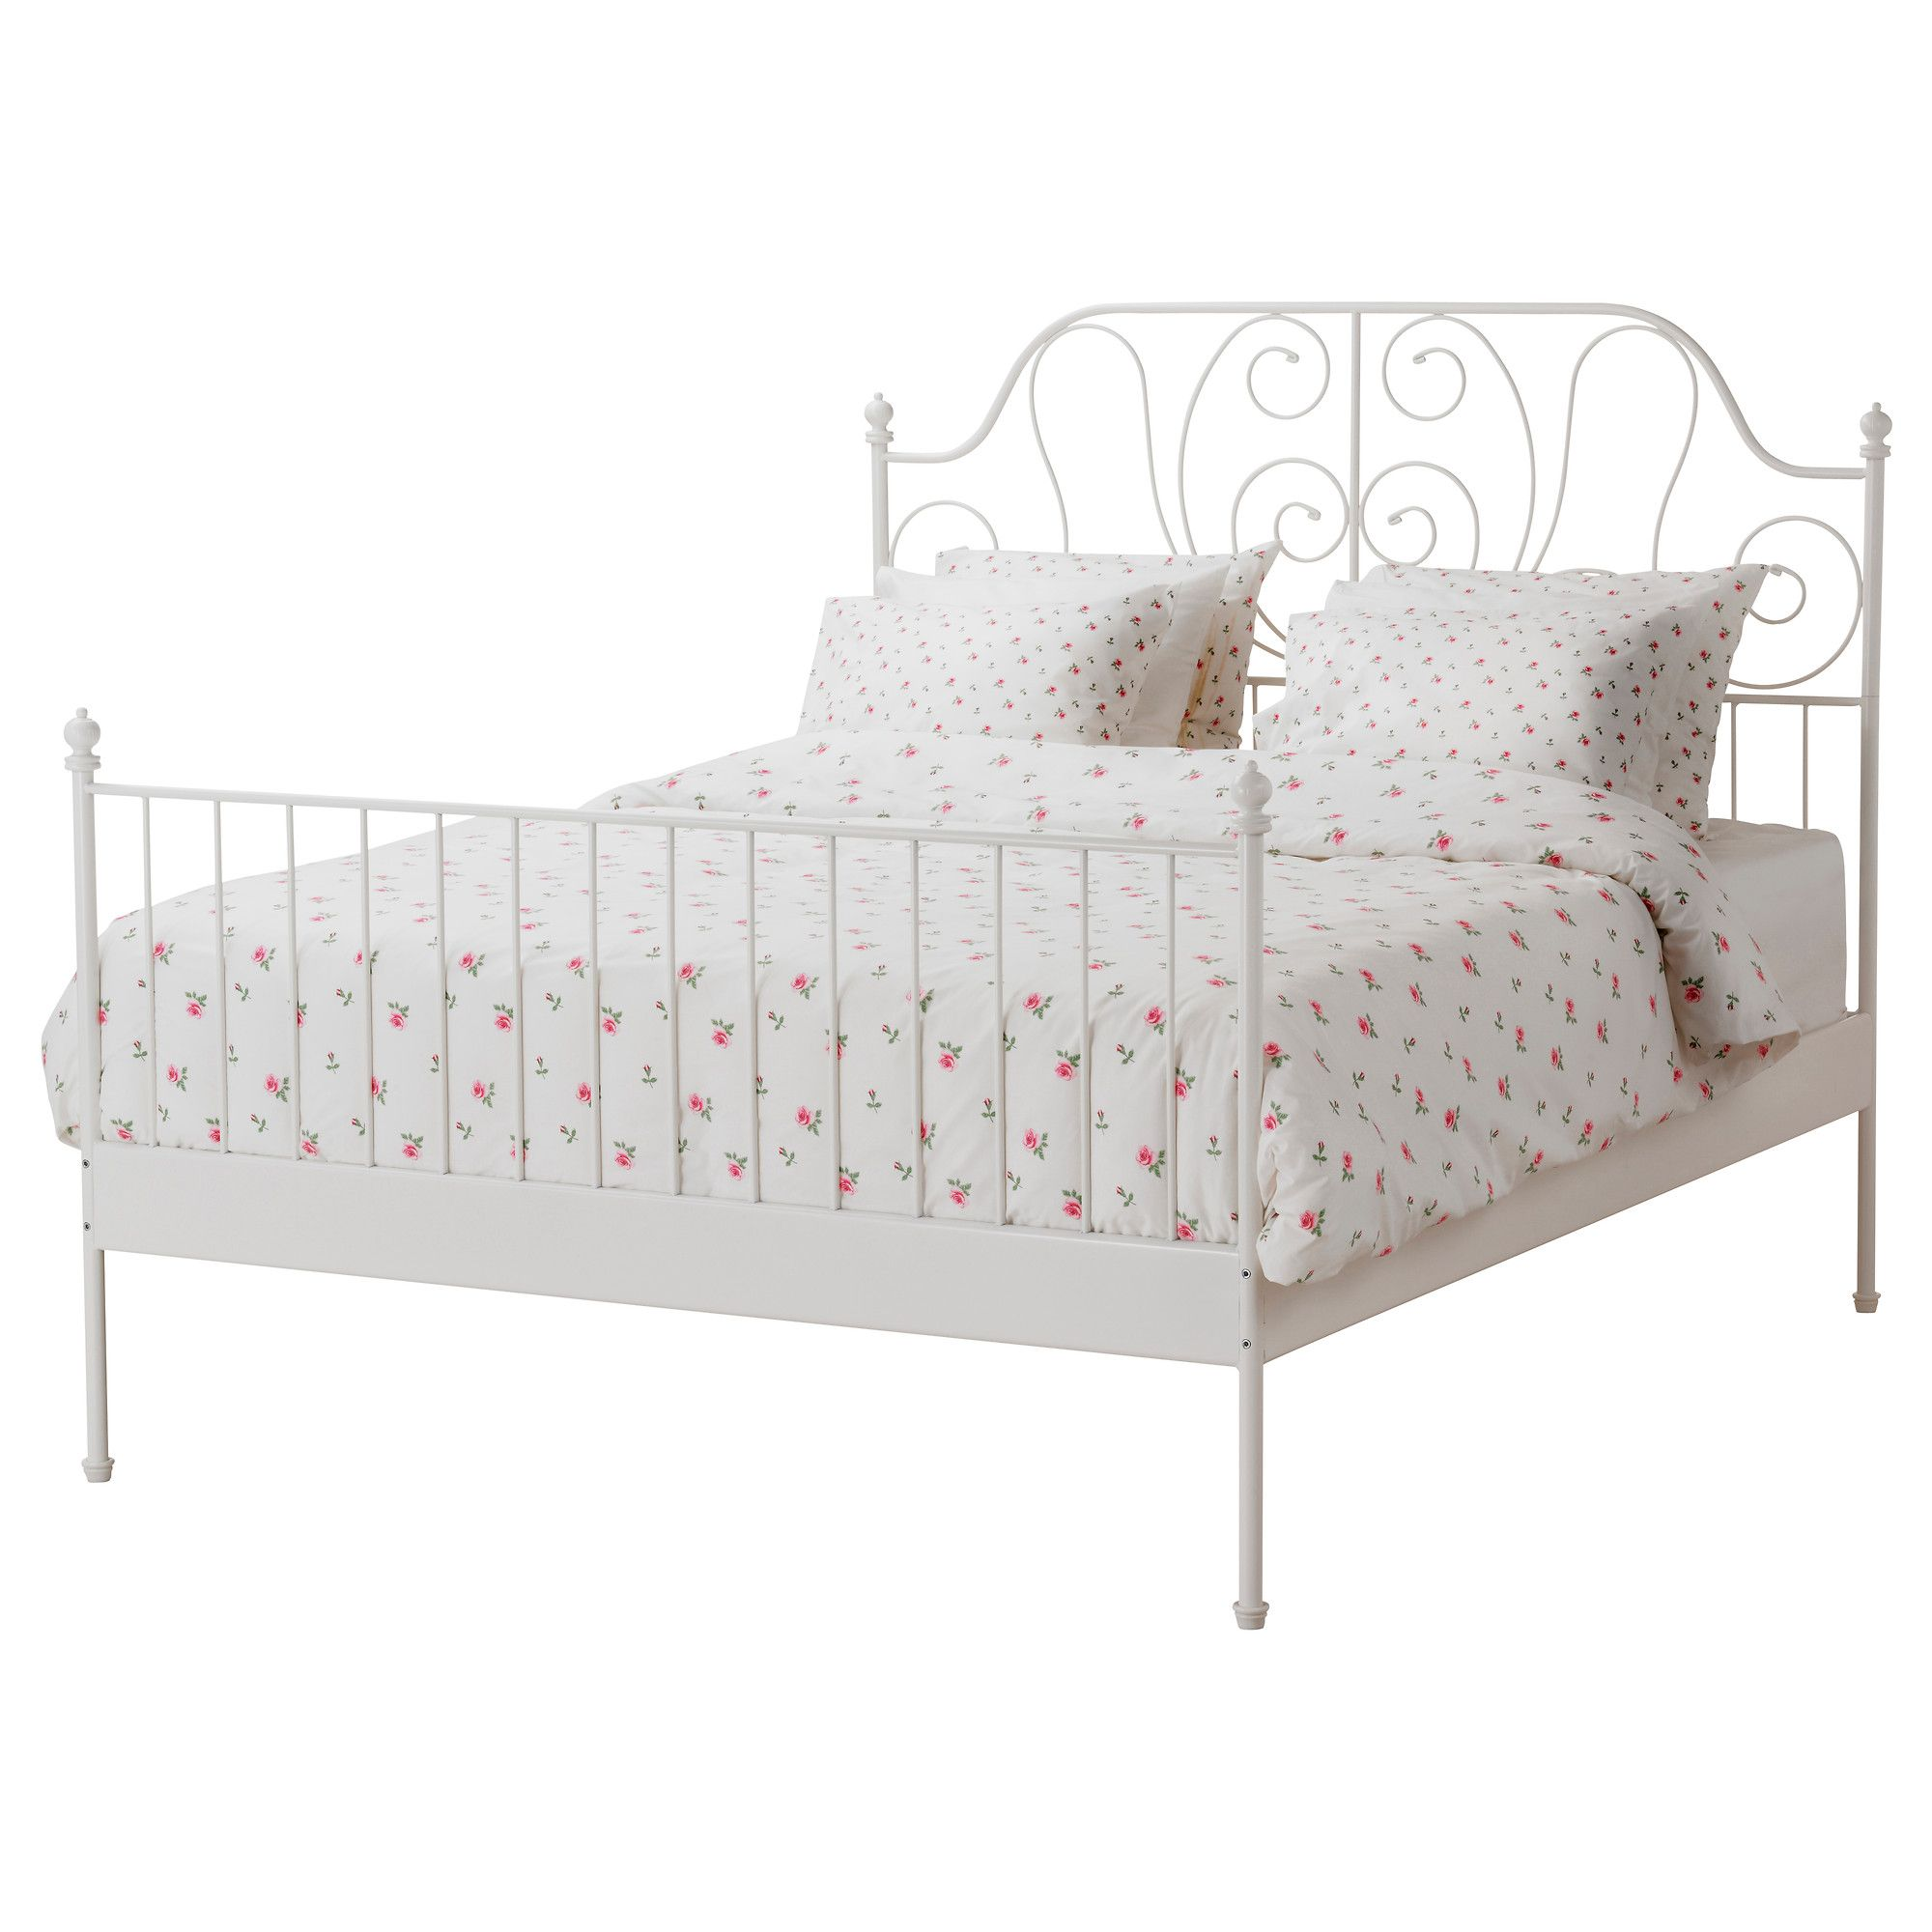 I M Thinking That I Want This Bed Frame But I Would Love To Paint